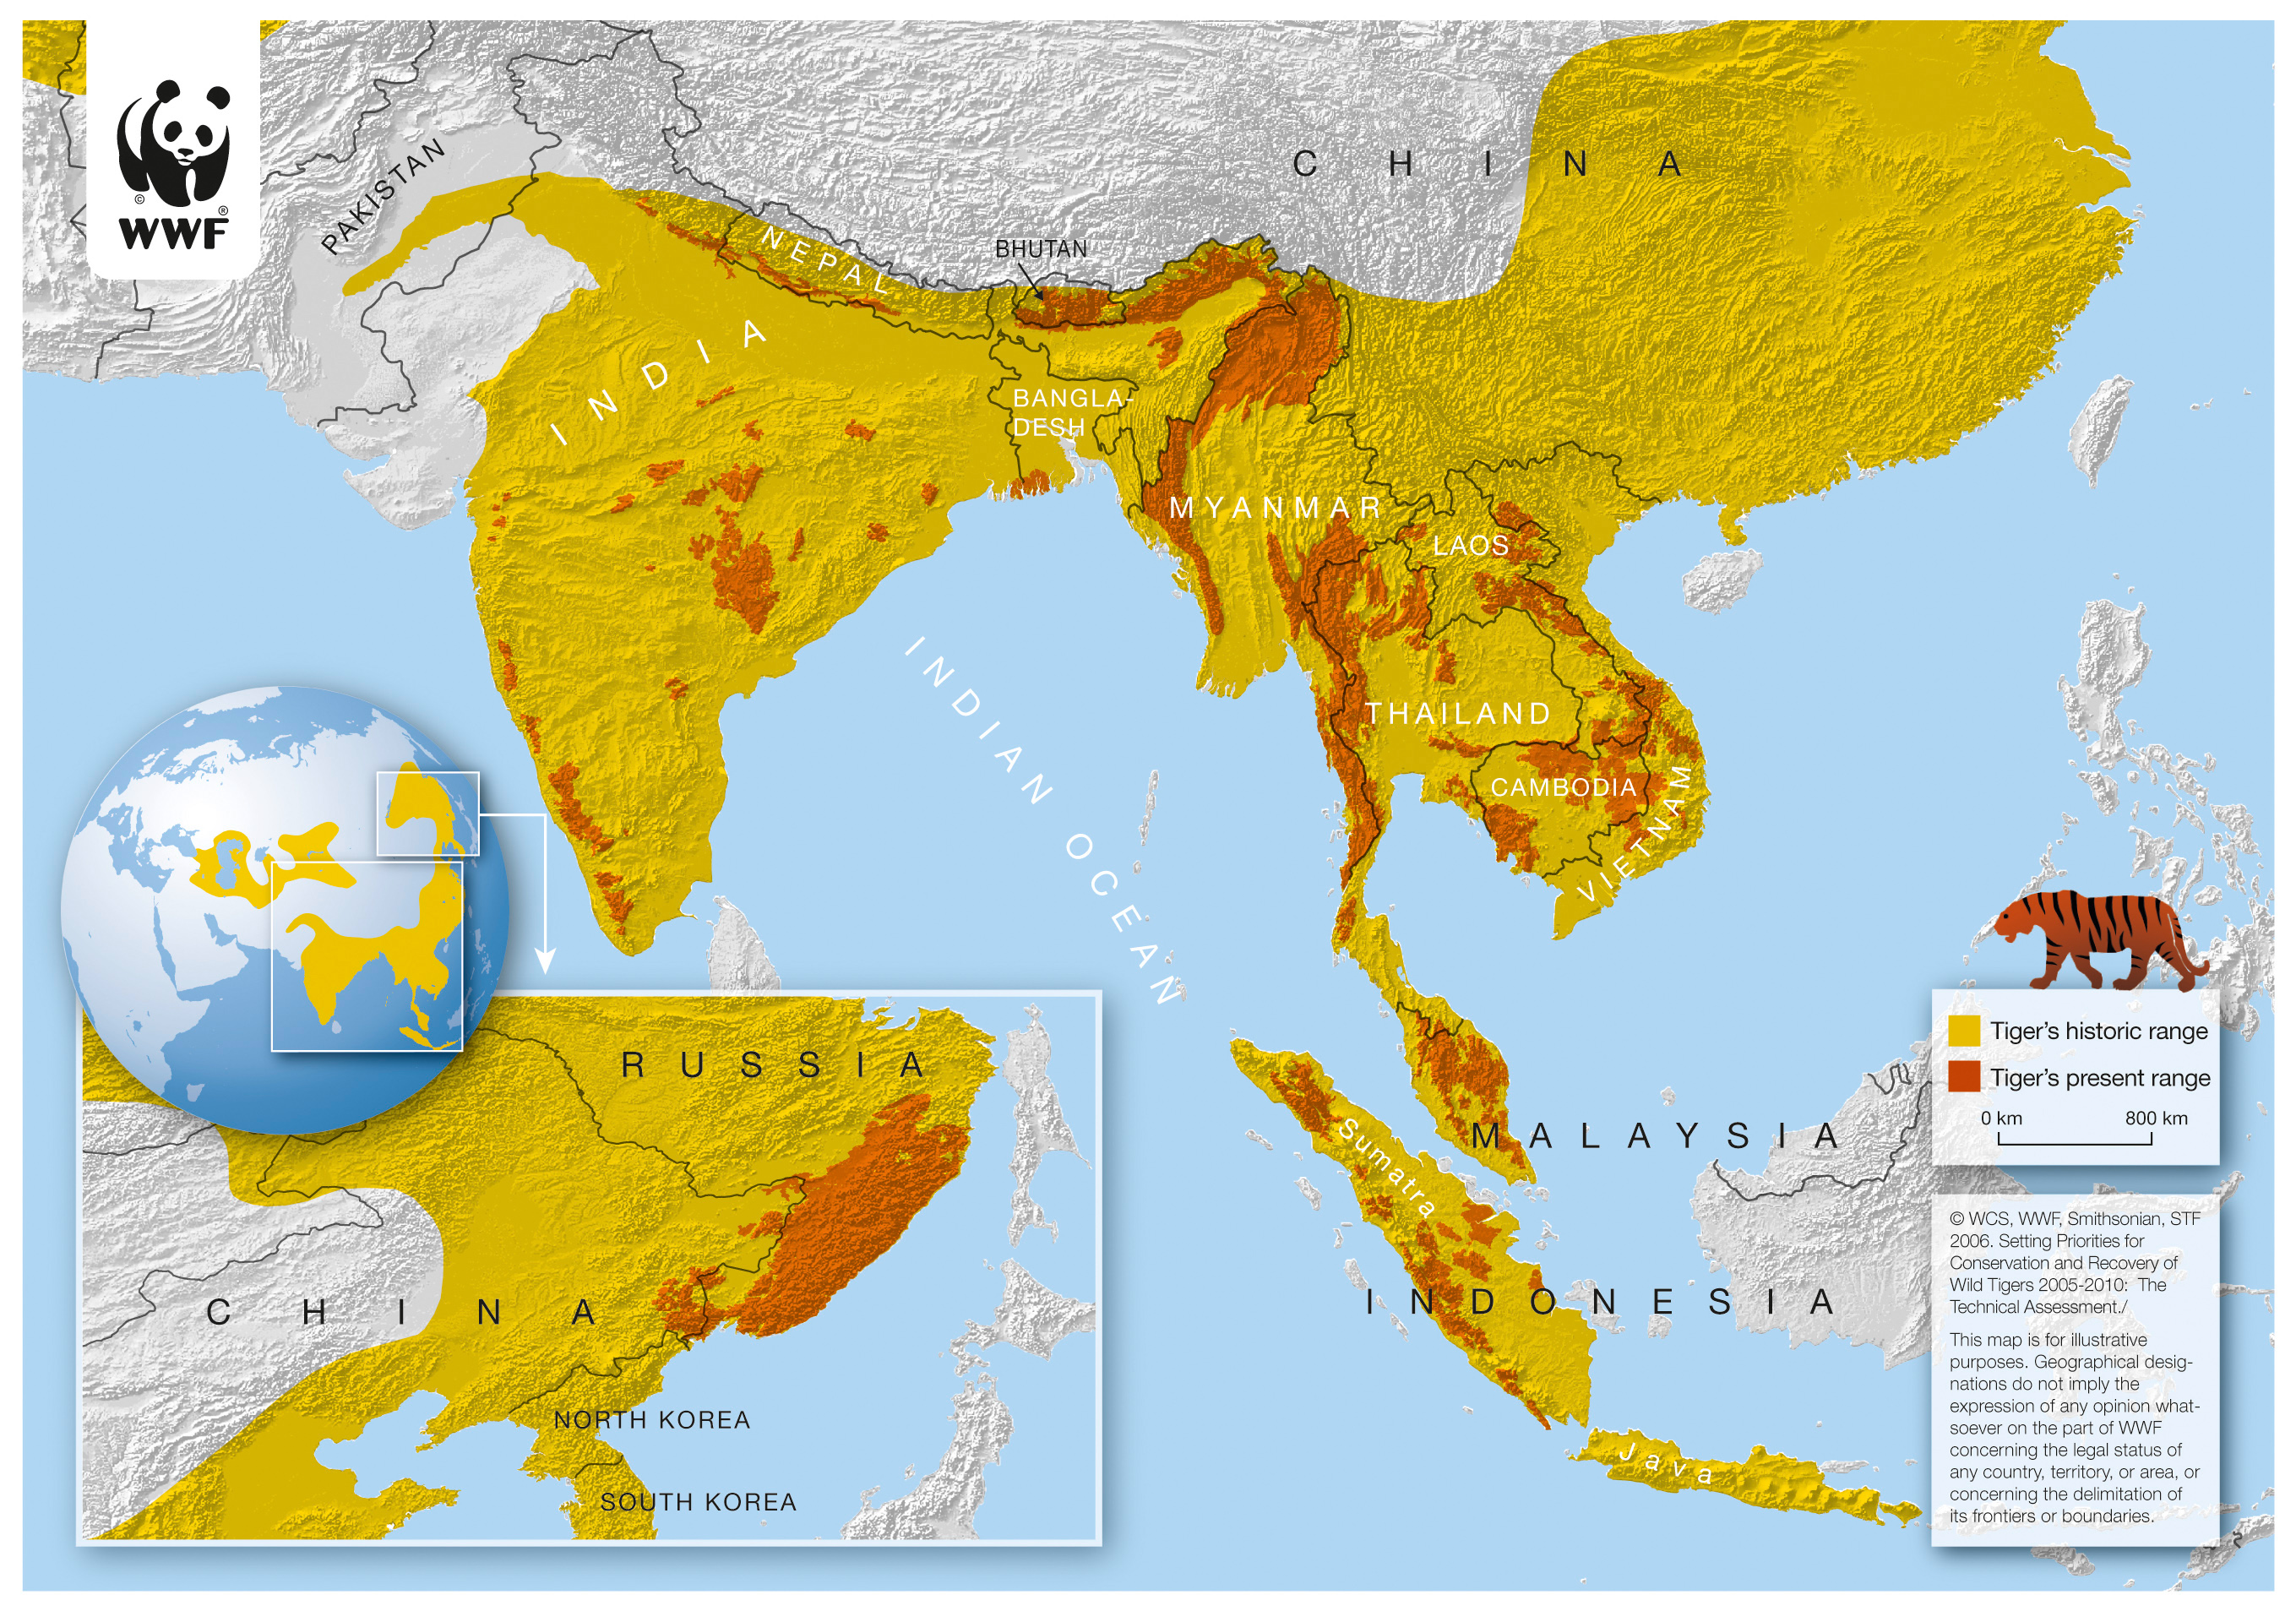 Global wild tiger population increases, but still a long way to go   WWF